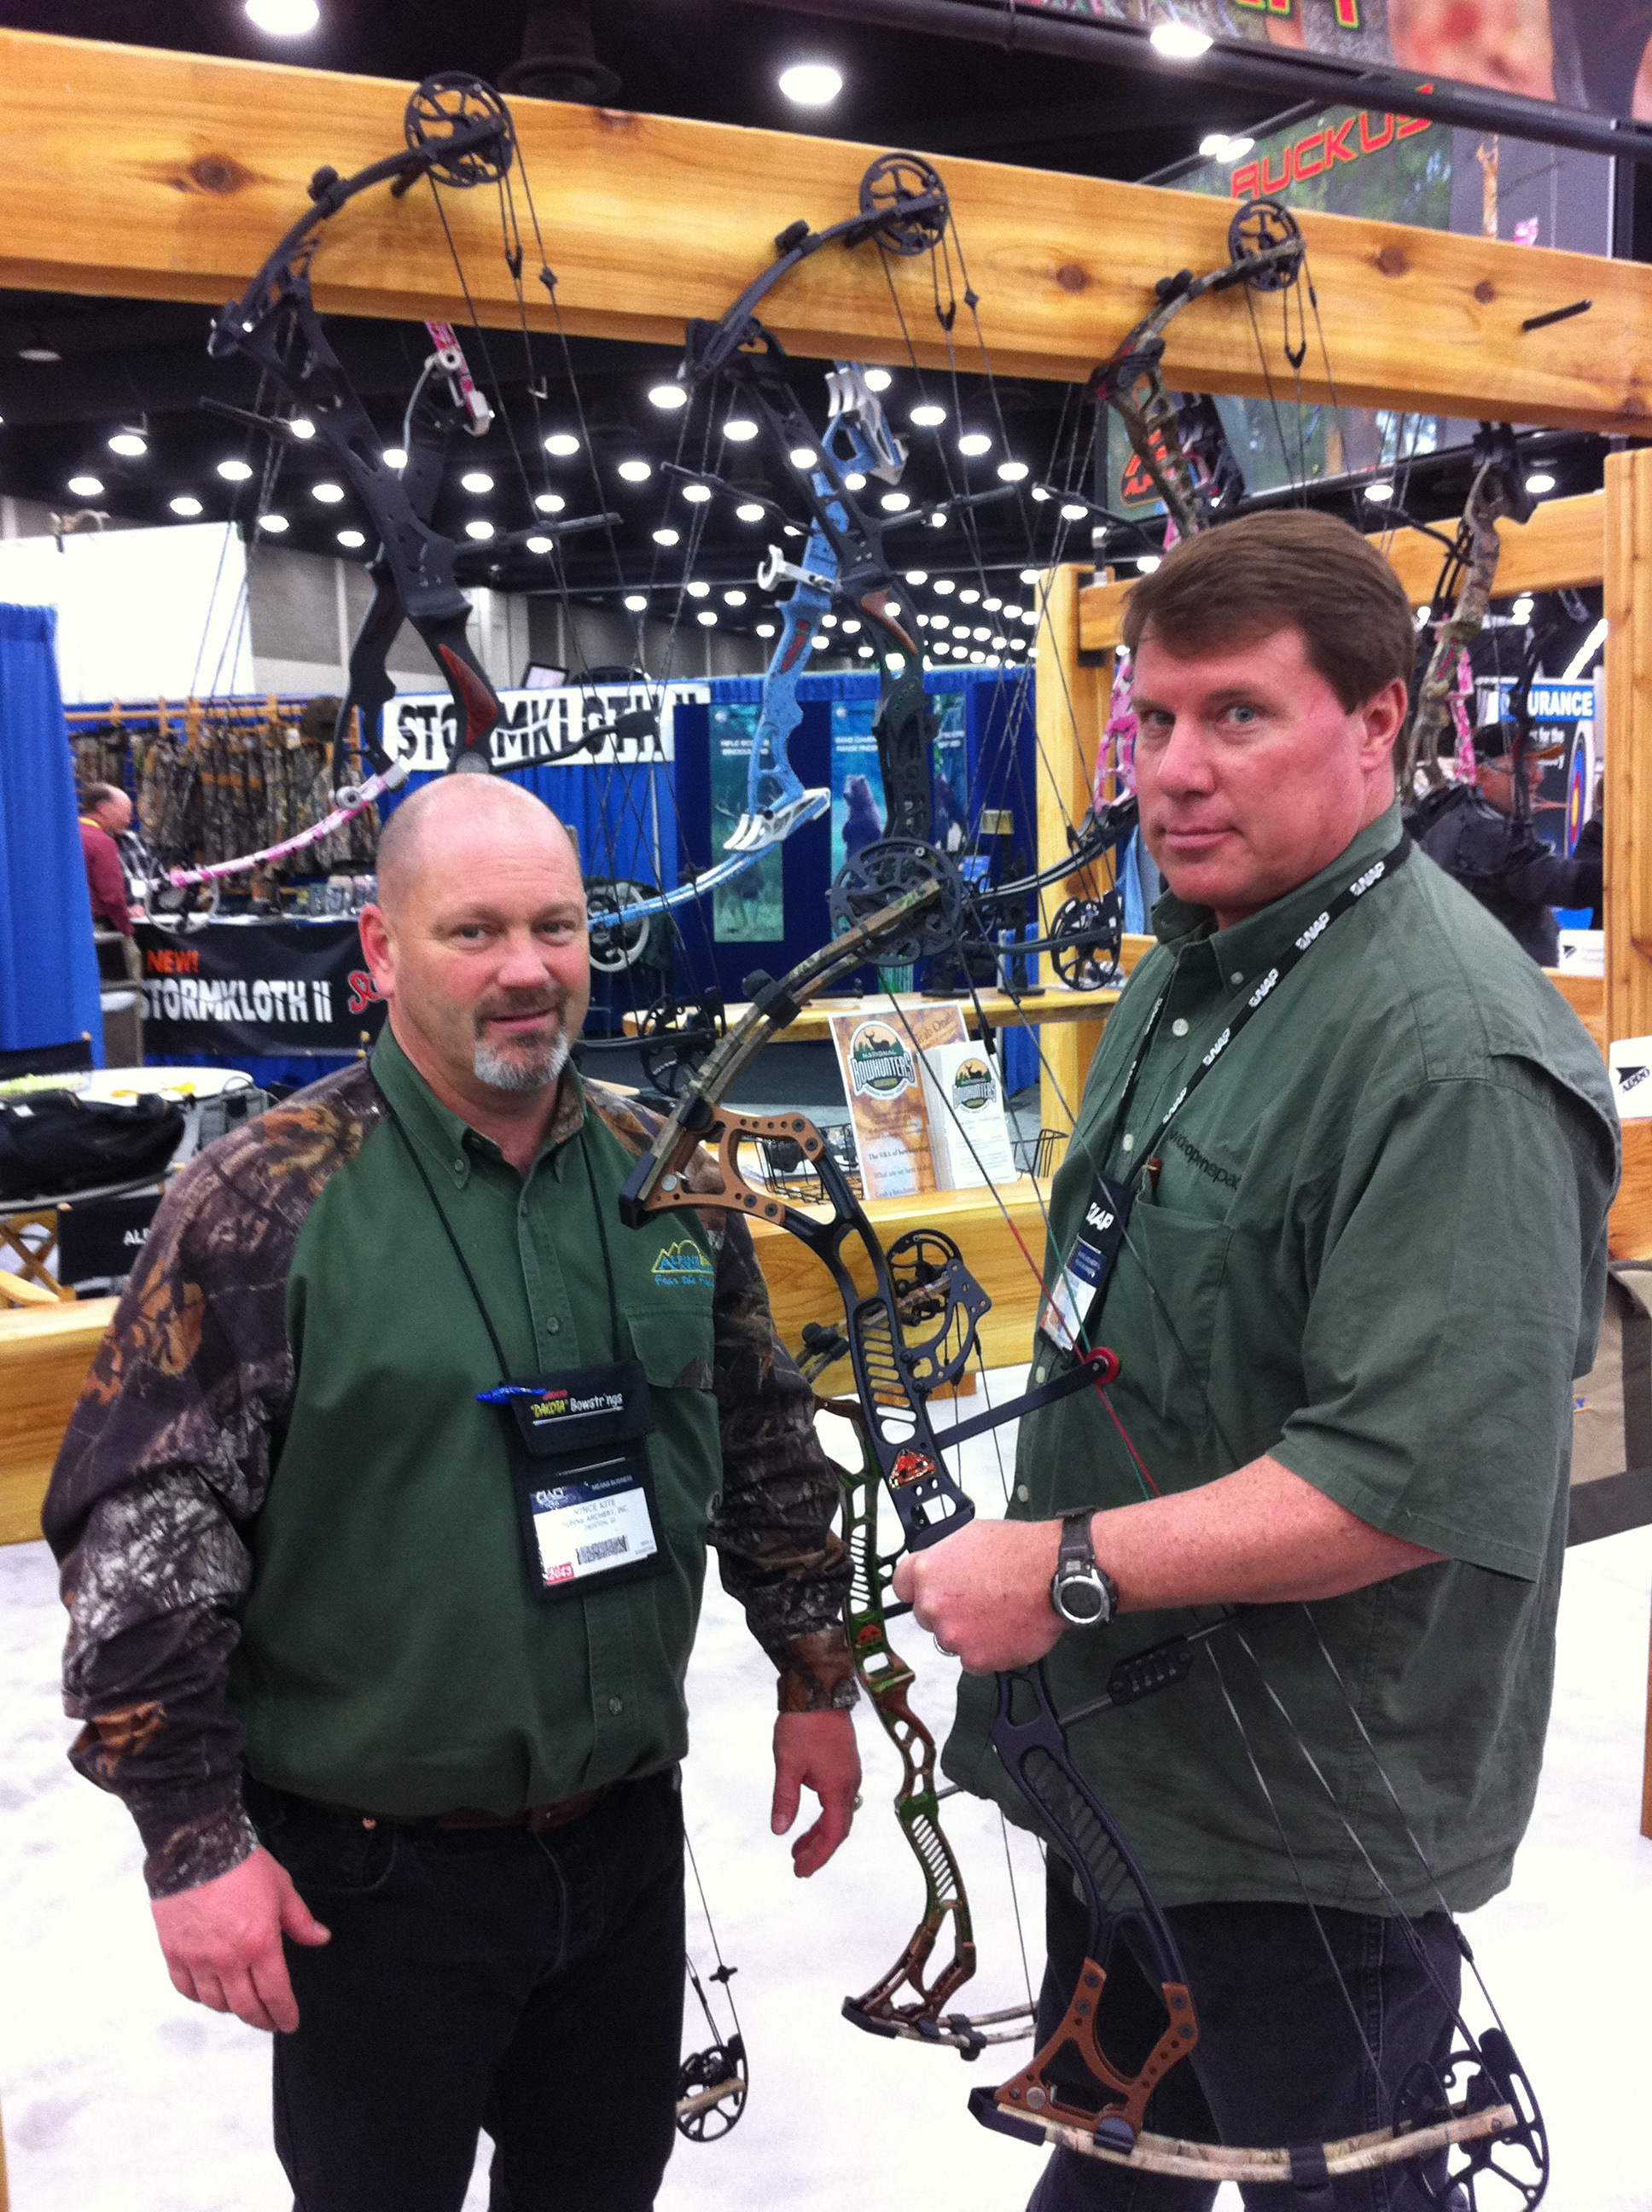 Entertainment Vince Kite of Alpine Archery inc and WOS Team member Scott checking out Alpine's newest bow, The Roxstar.